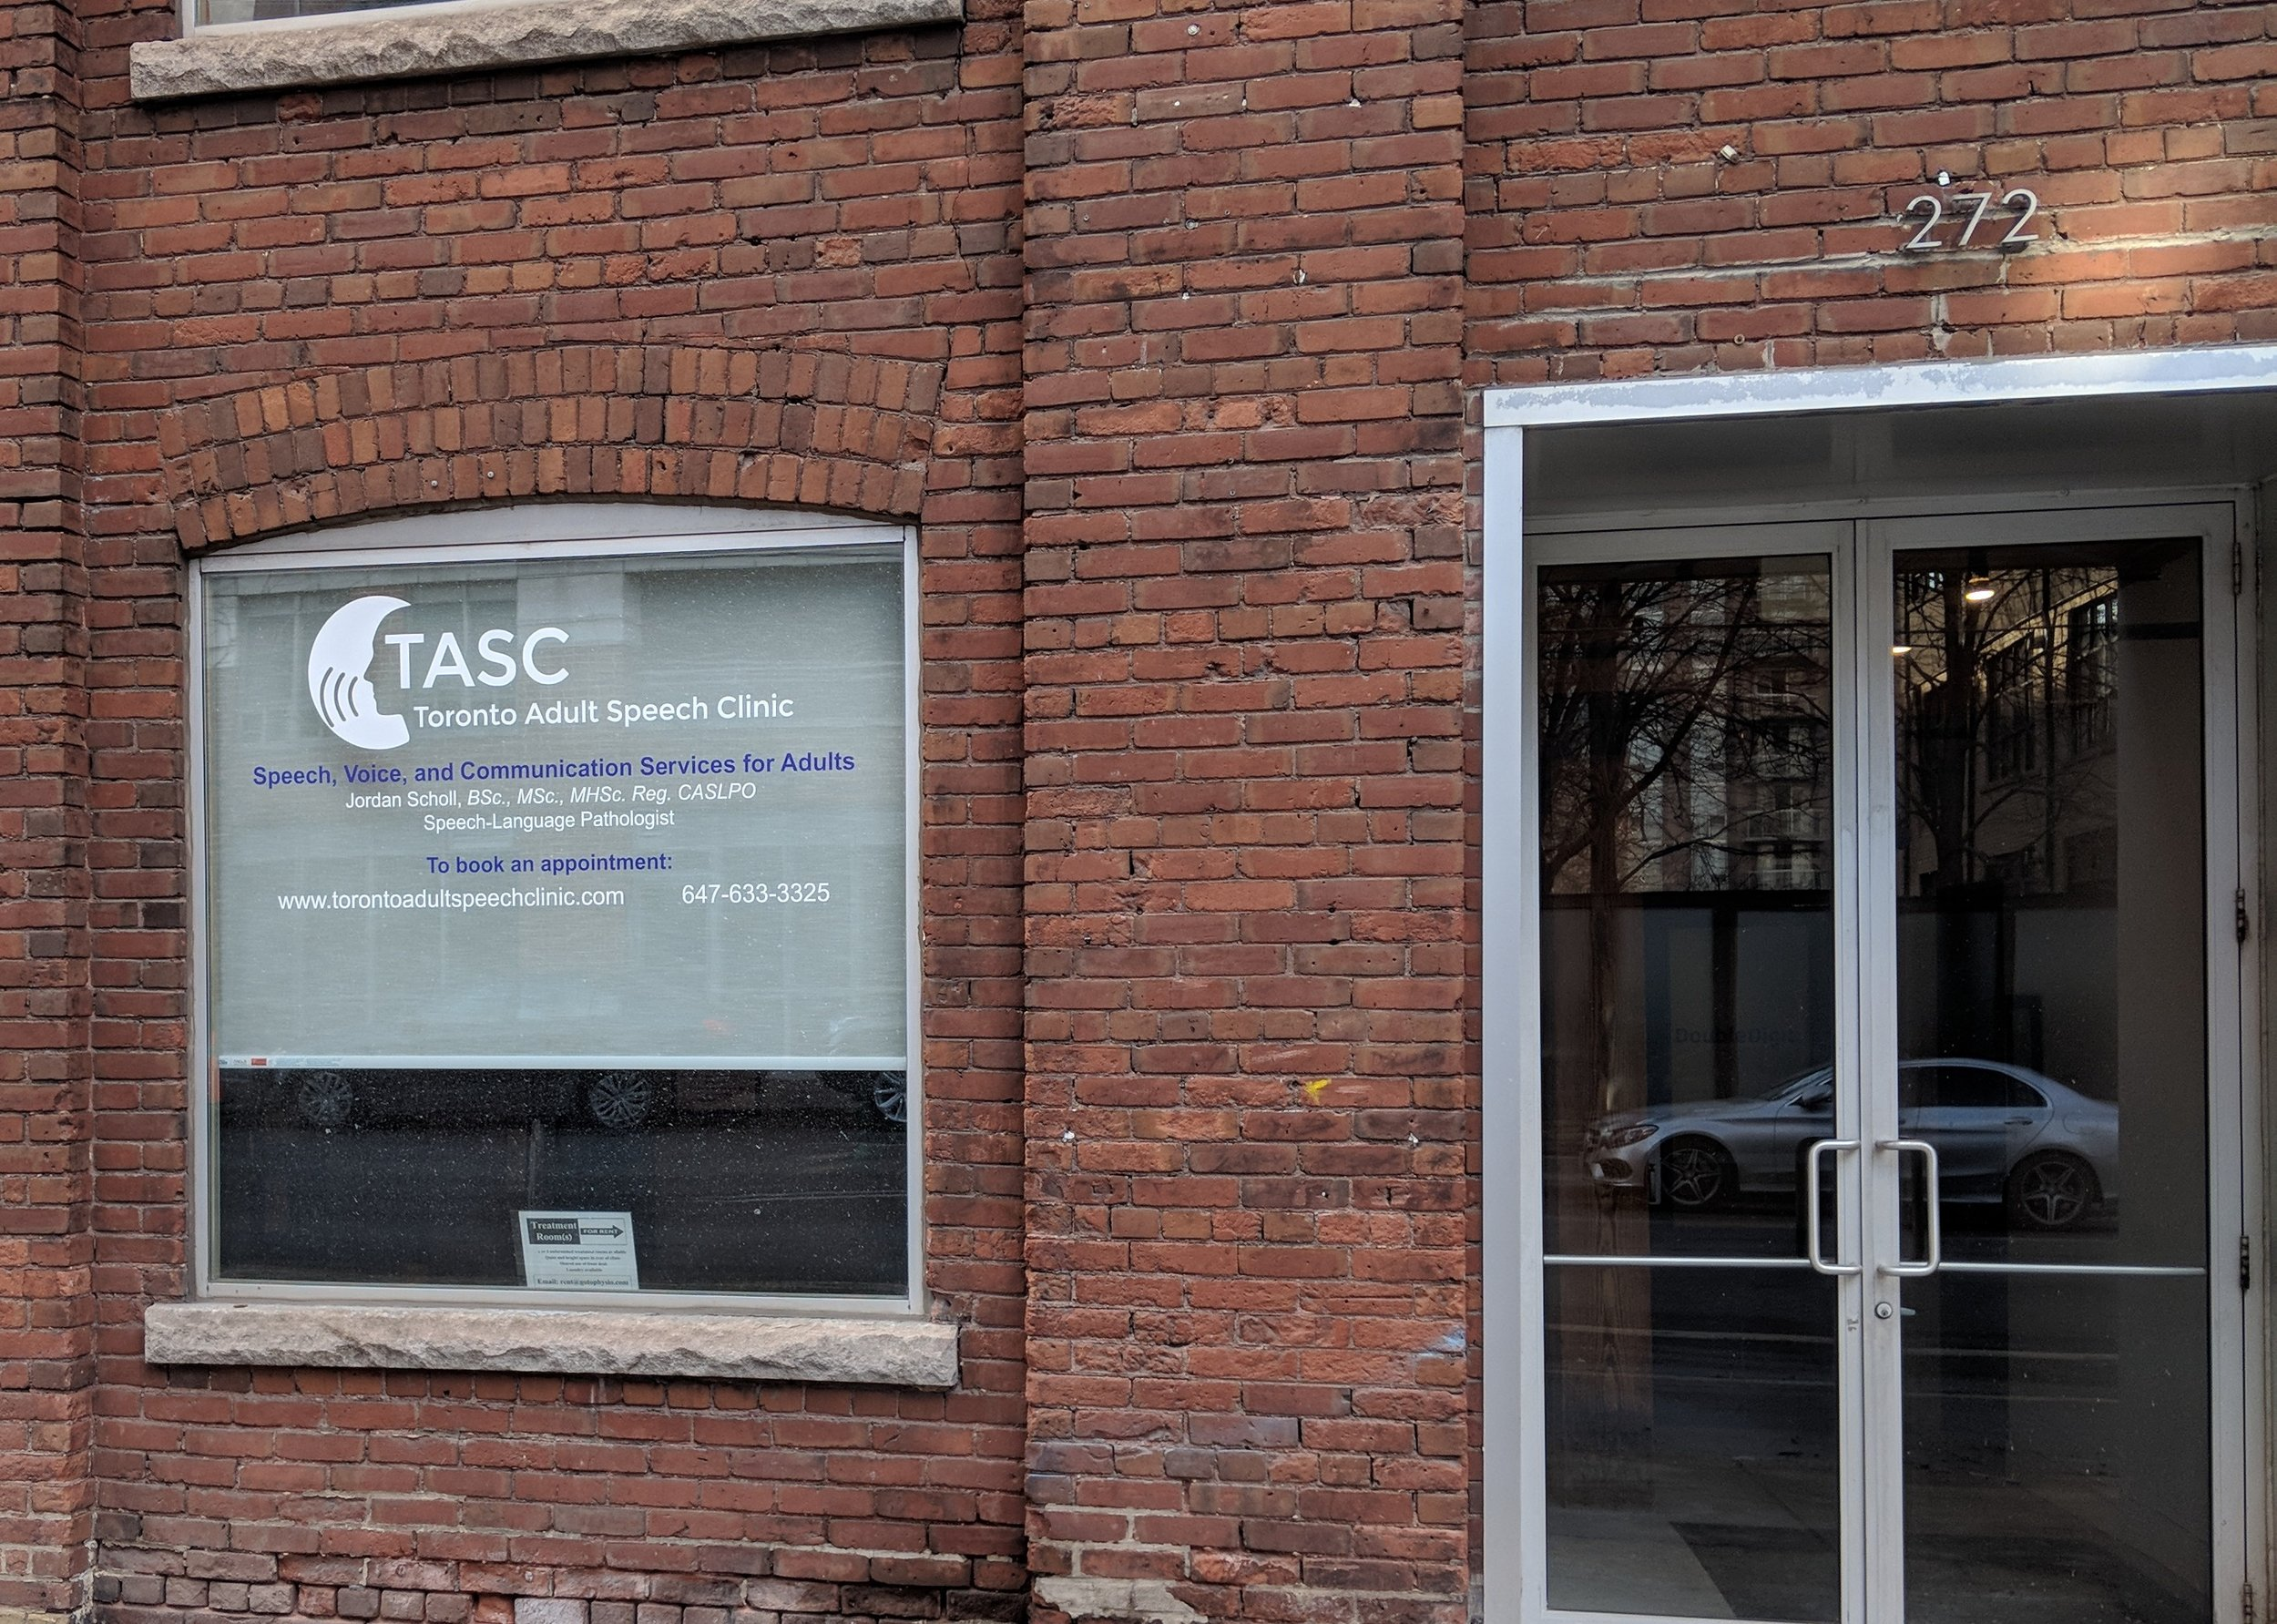 Toronto Adult Speech Clinic: 272 Richmond St E. Suite 100